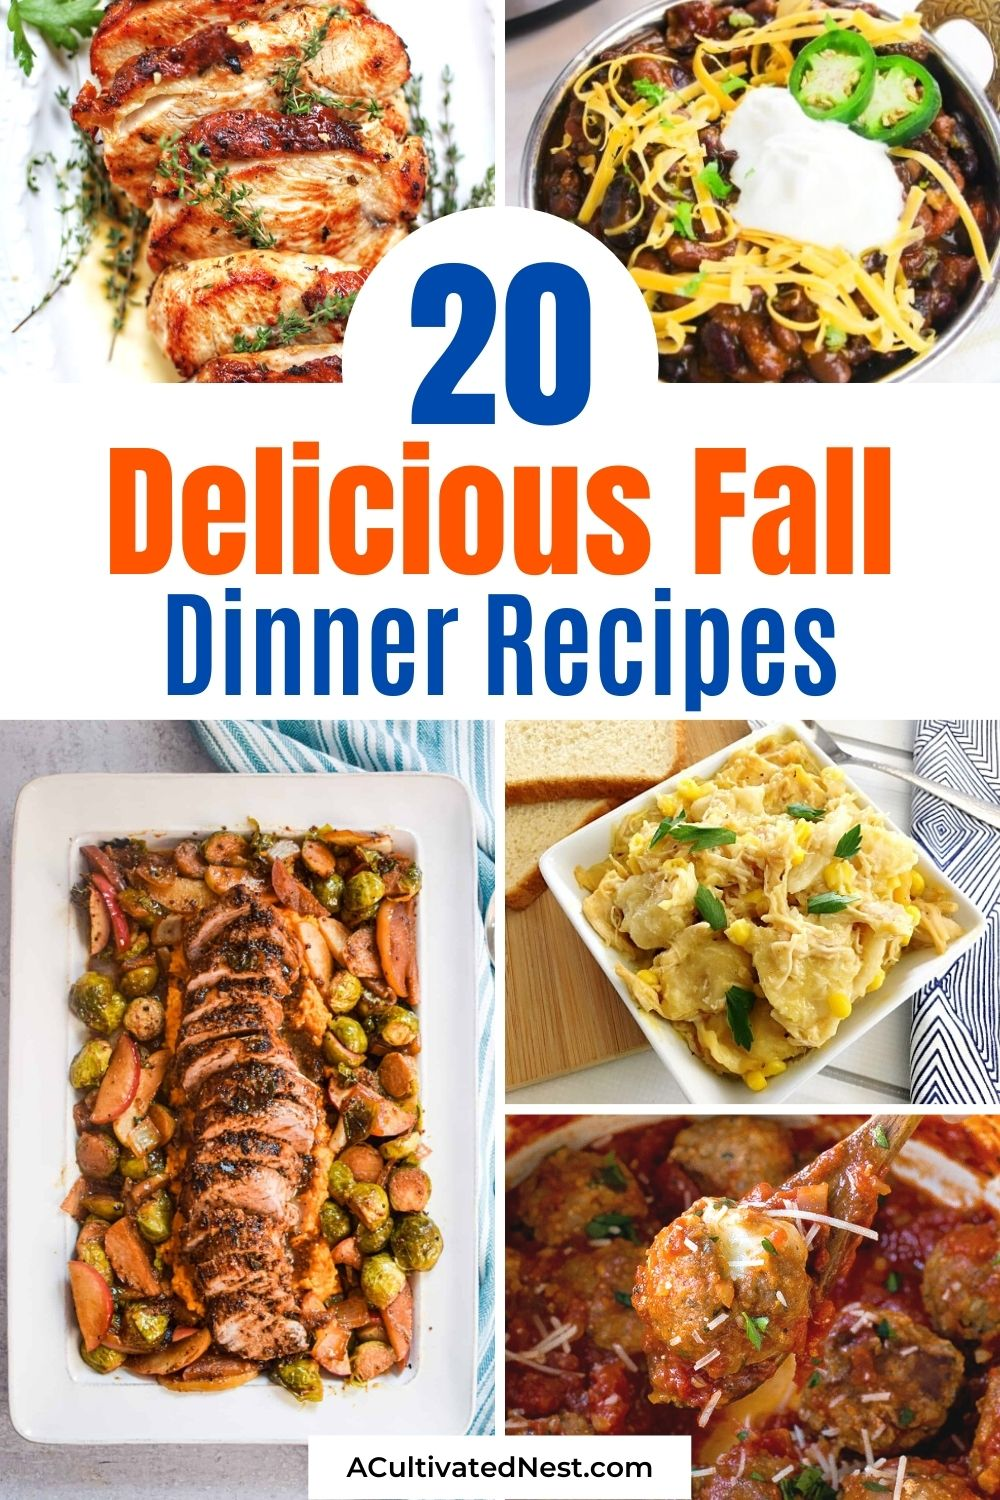 20 Delicious Fall Dinner Recipes- Serve up some delicious fall flavors for dinner with this list of delicious fall dinner recipes to try! | #fallRecipe #recipeIdeas #fallFoods #dinnerIdeas #ACultivatedNest